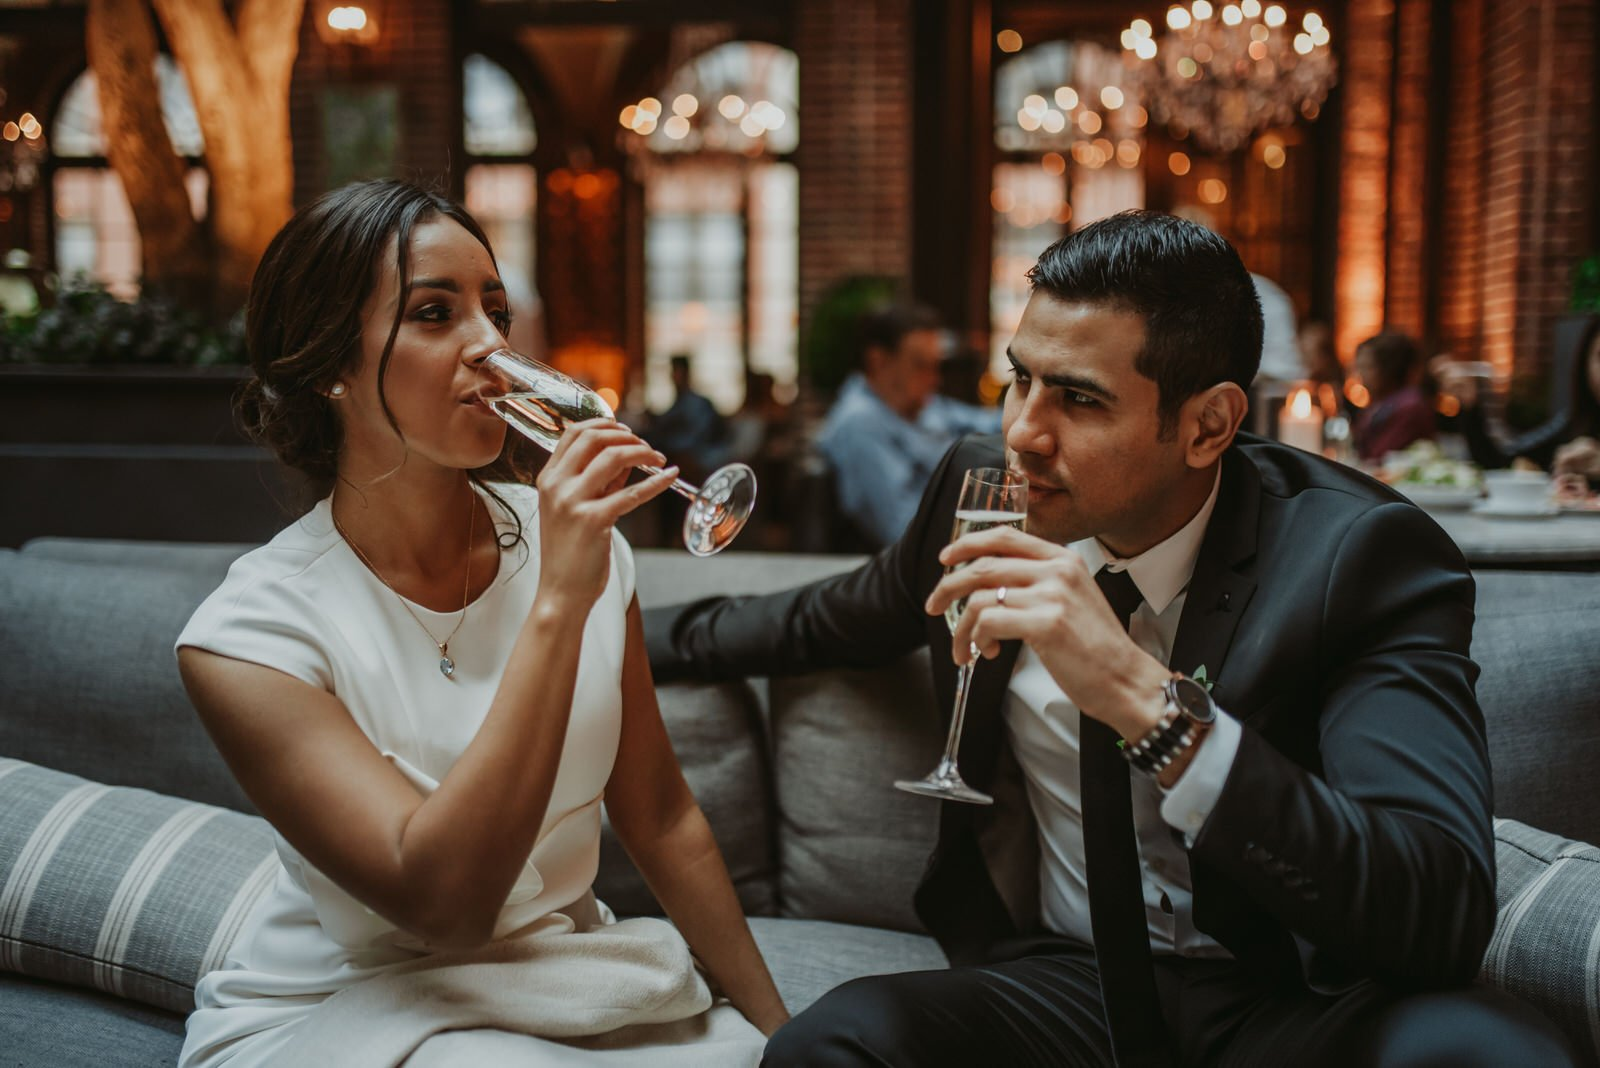 bride and groom celebrating in 3 arts cafe Chicago wedding photography